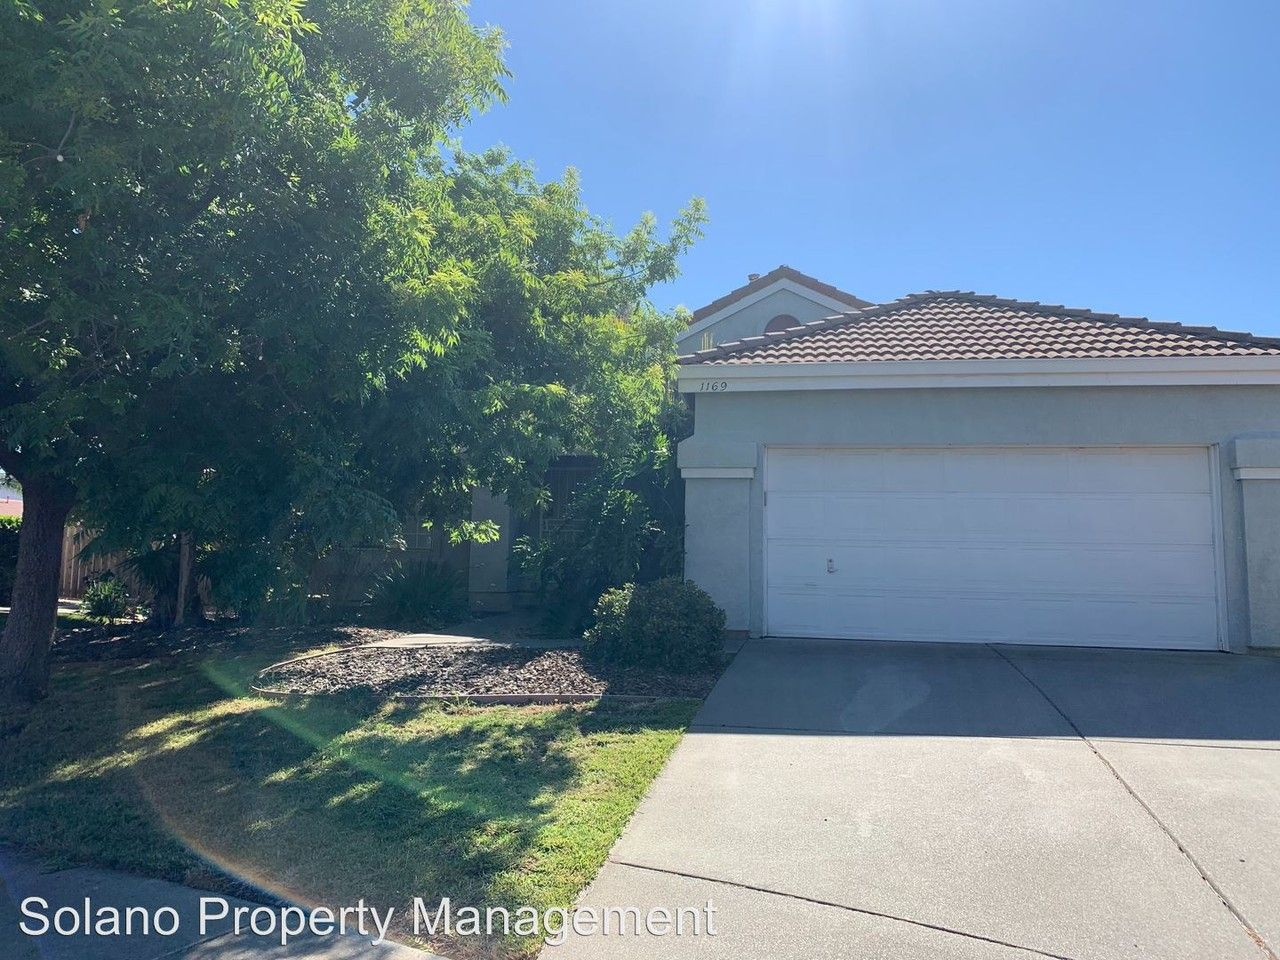 1169 Fox Hound Ct Vacaville Ca 95687 3 Bedroom House For